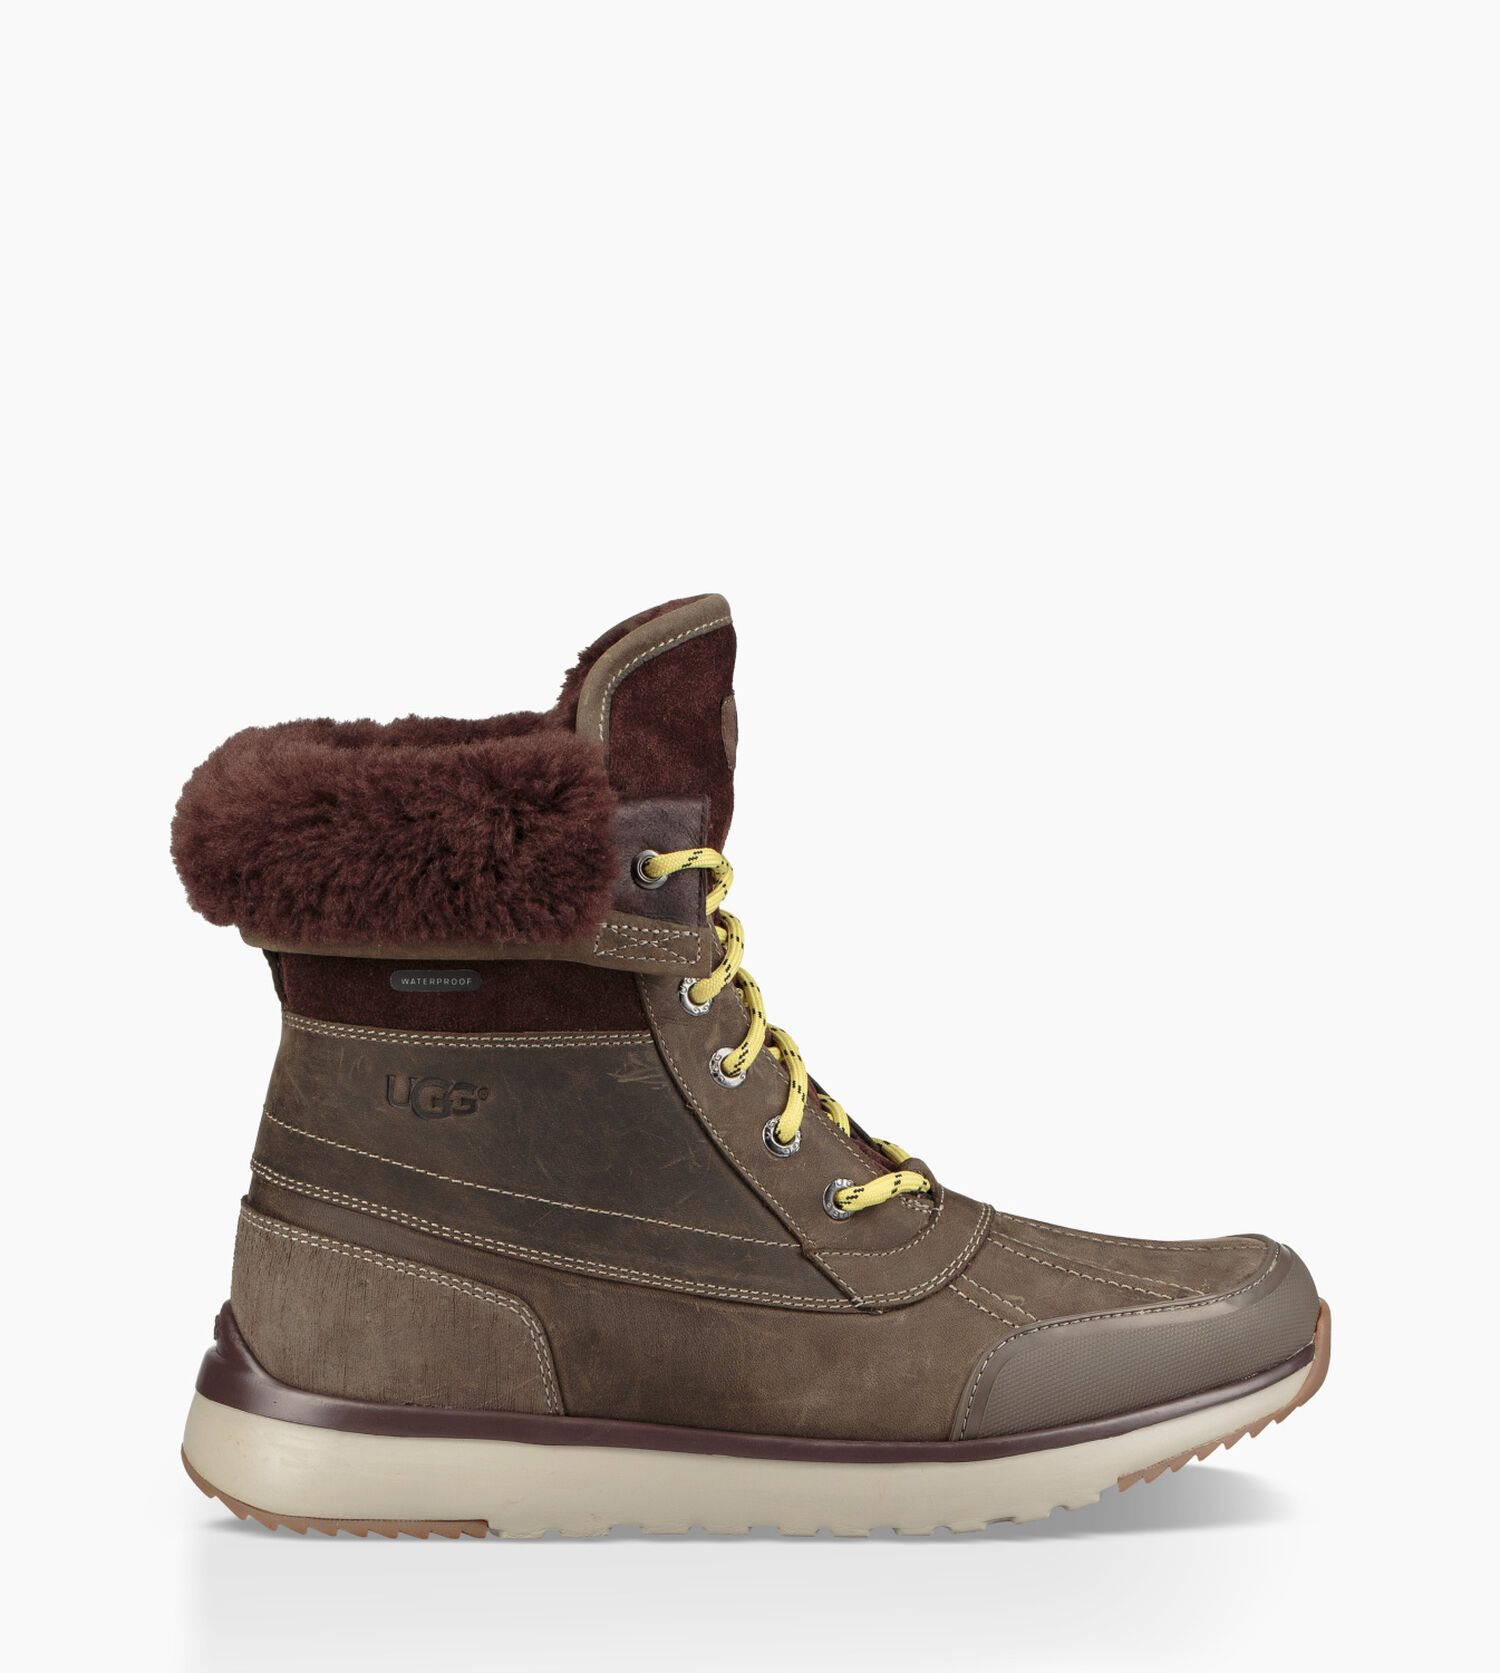 c06b59d2d28 Men's Share this product Eliasson Boot